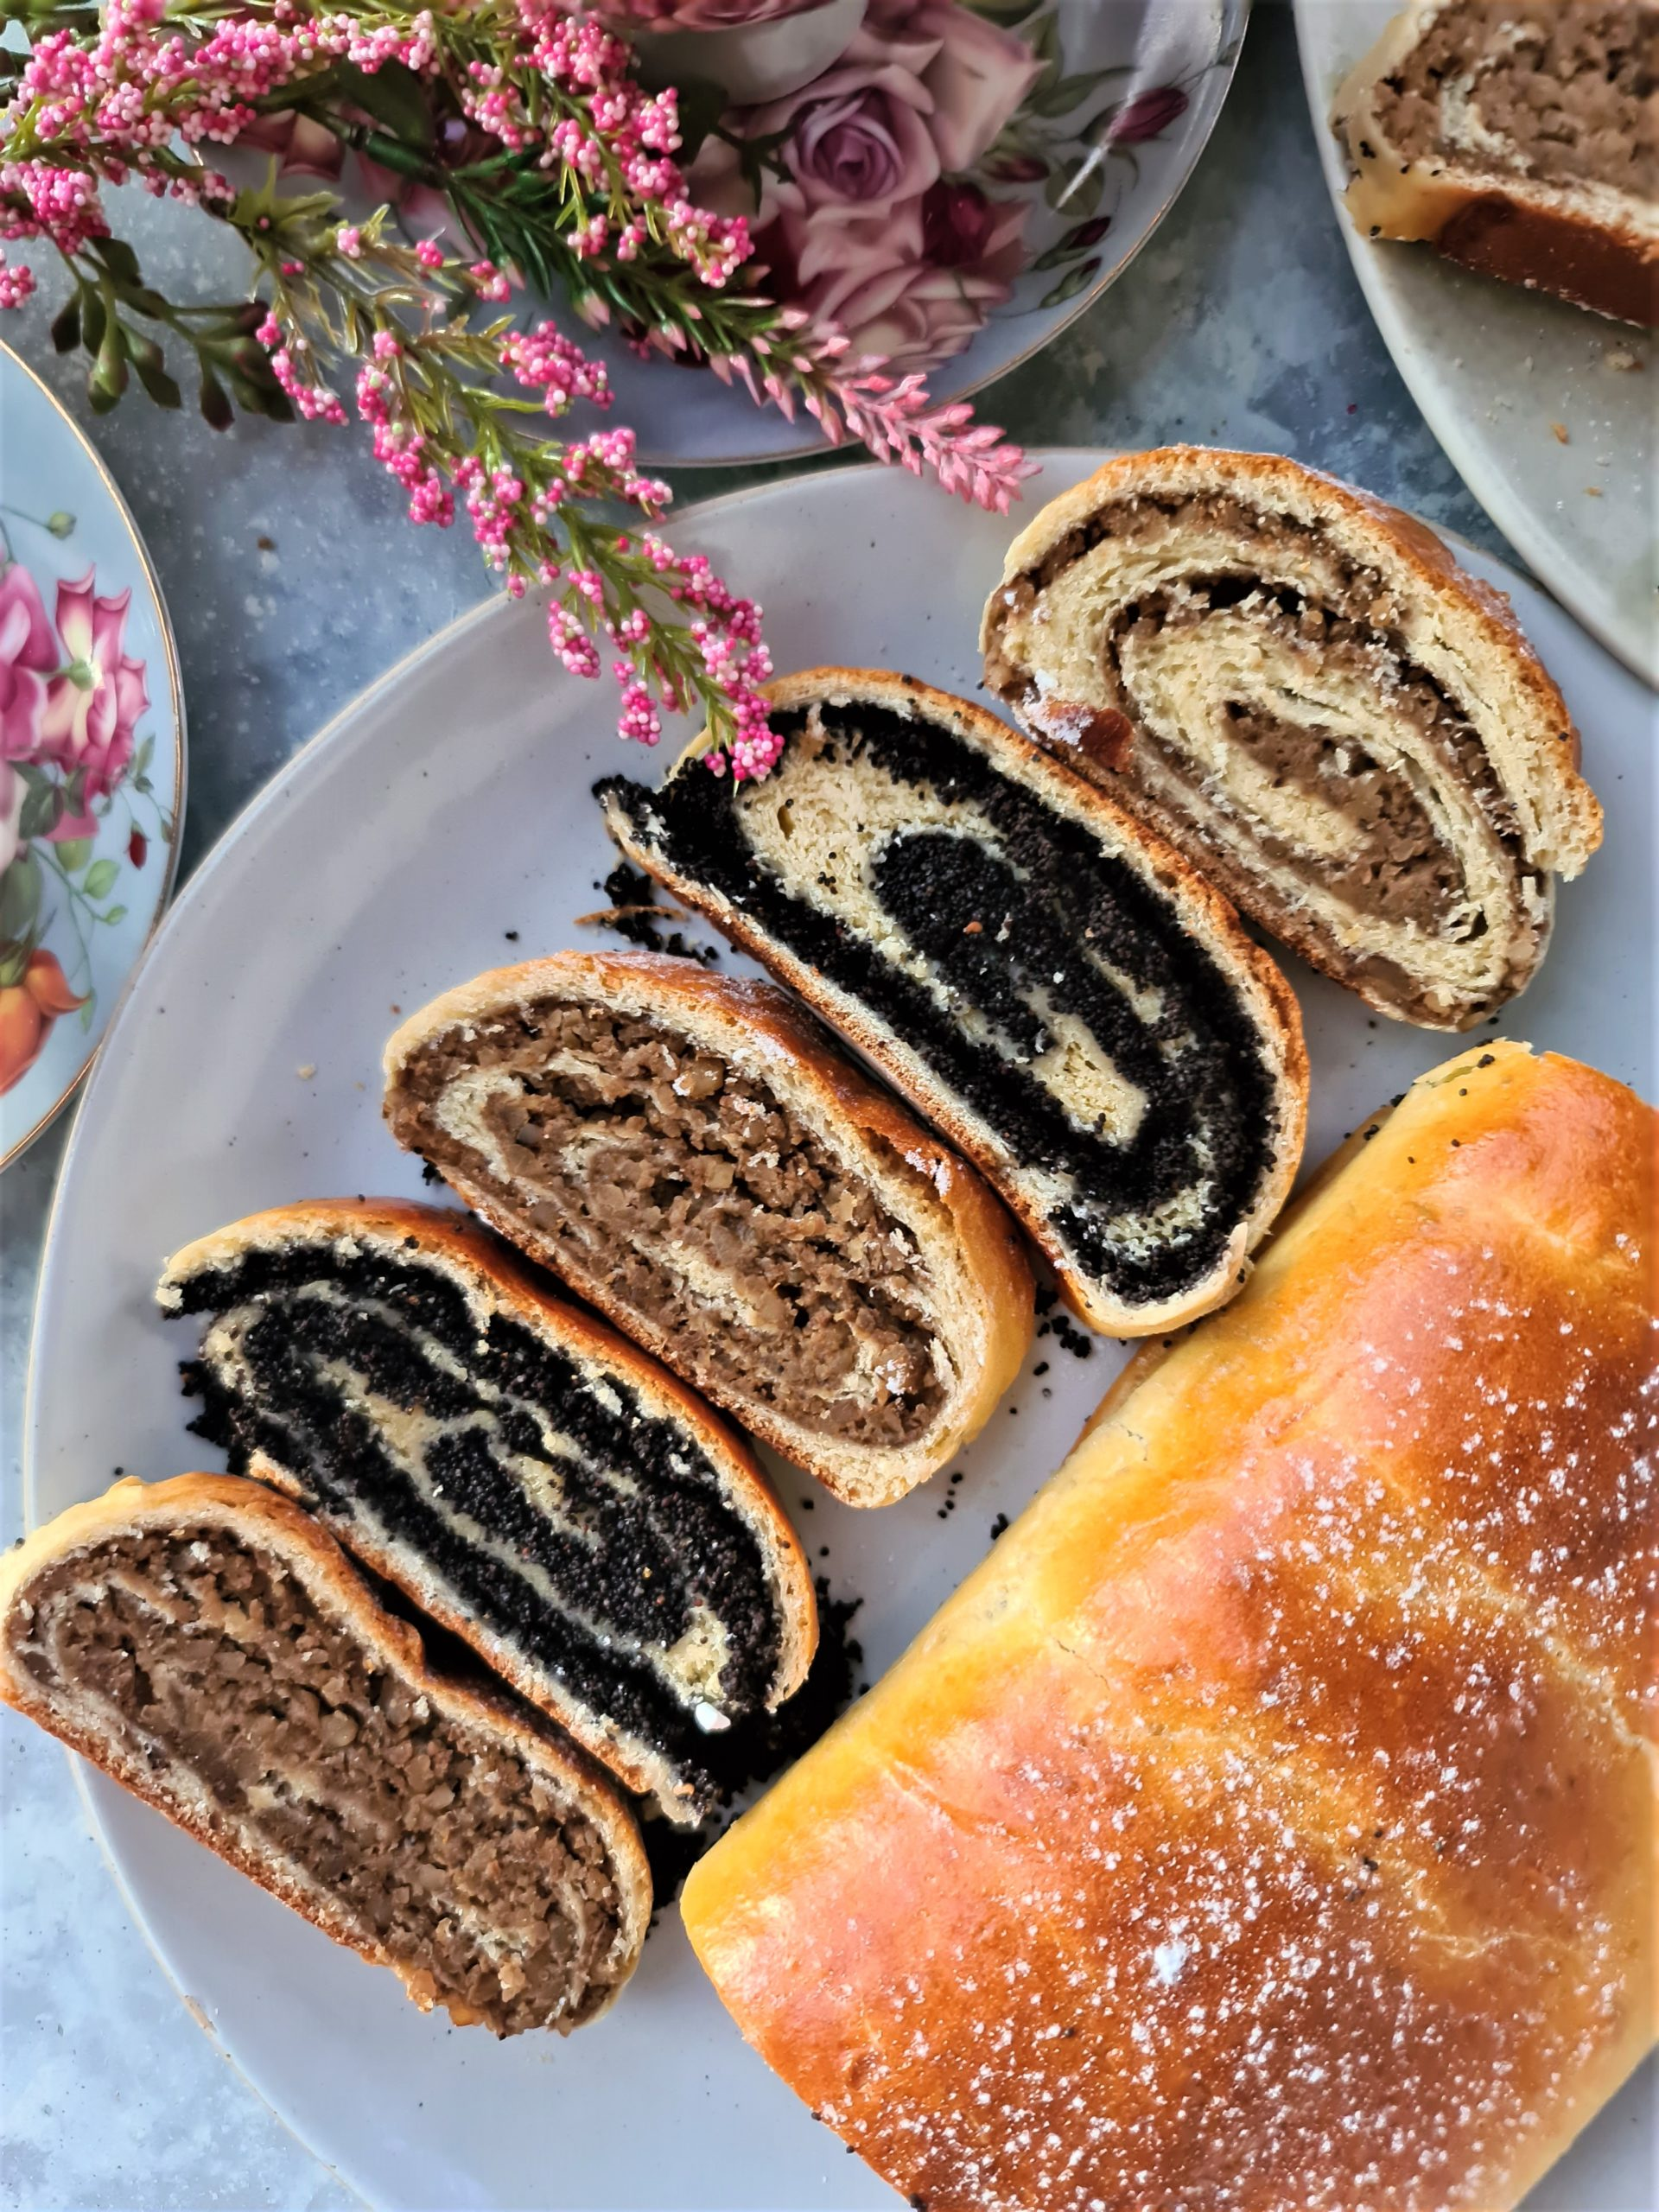 Homemade Strudels with Walnuts and Poppy Seeds